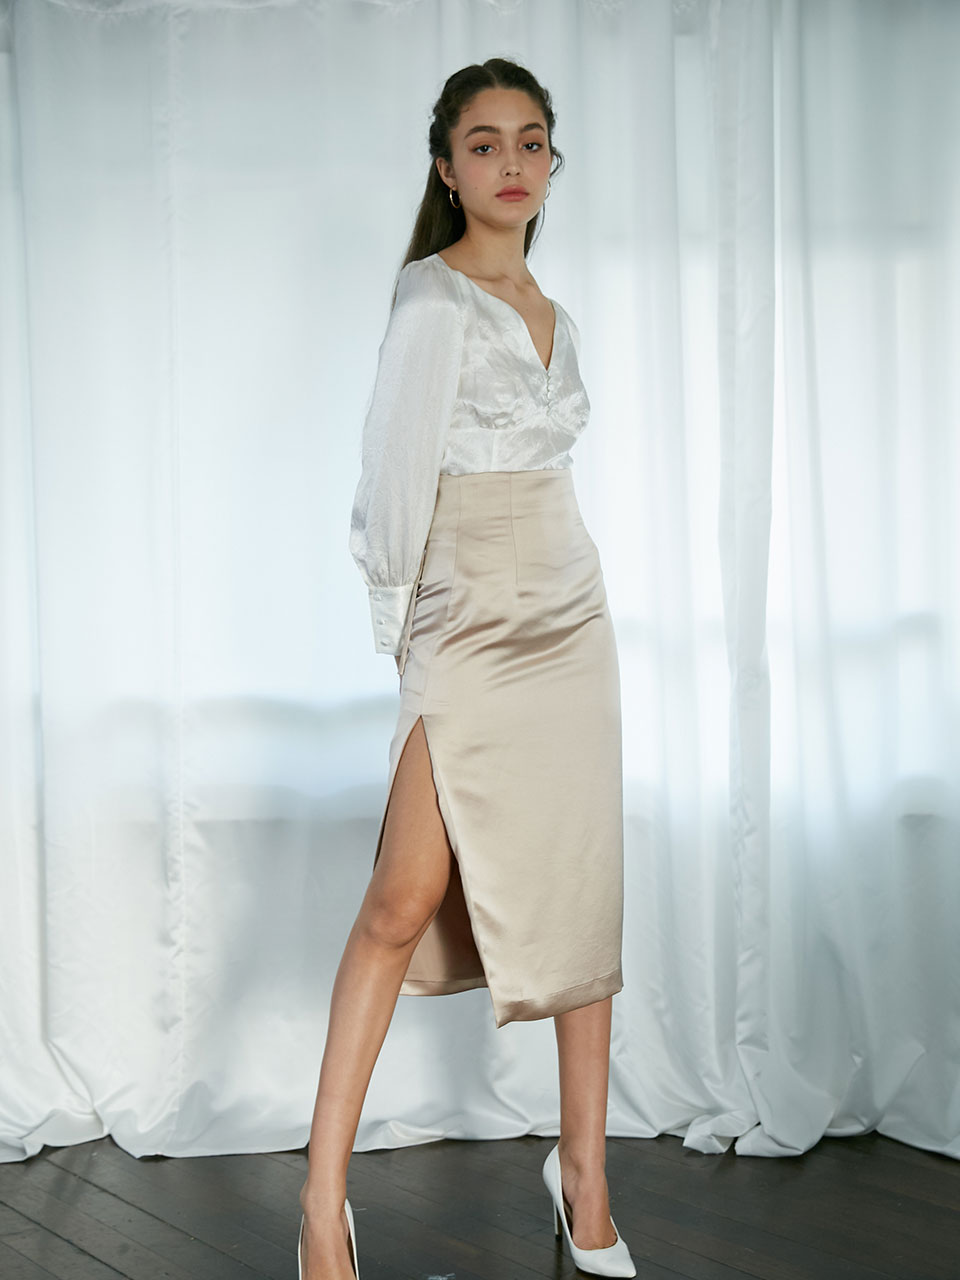 [11월27일 예약배송]19Fall Corset slit skirt (Beige)